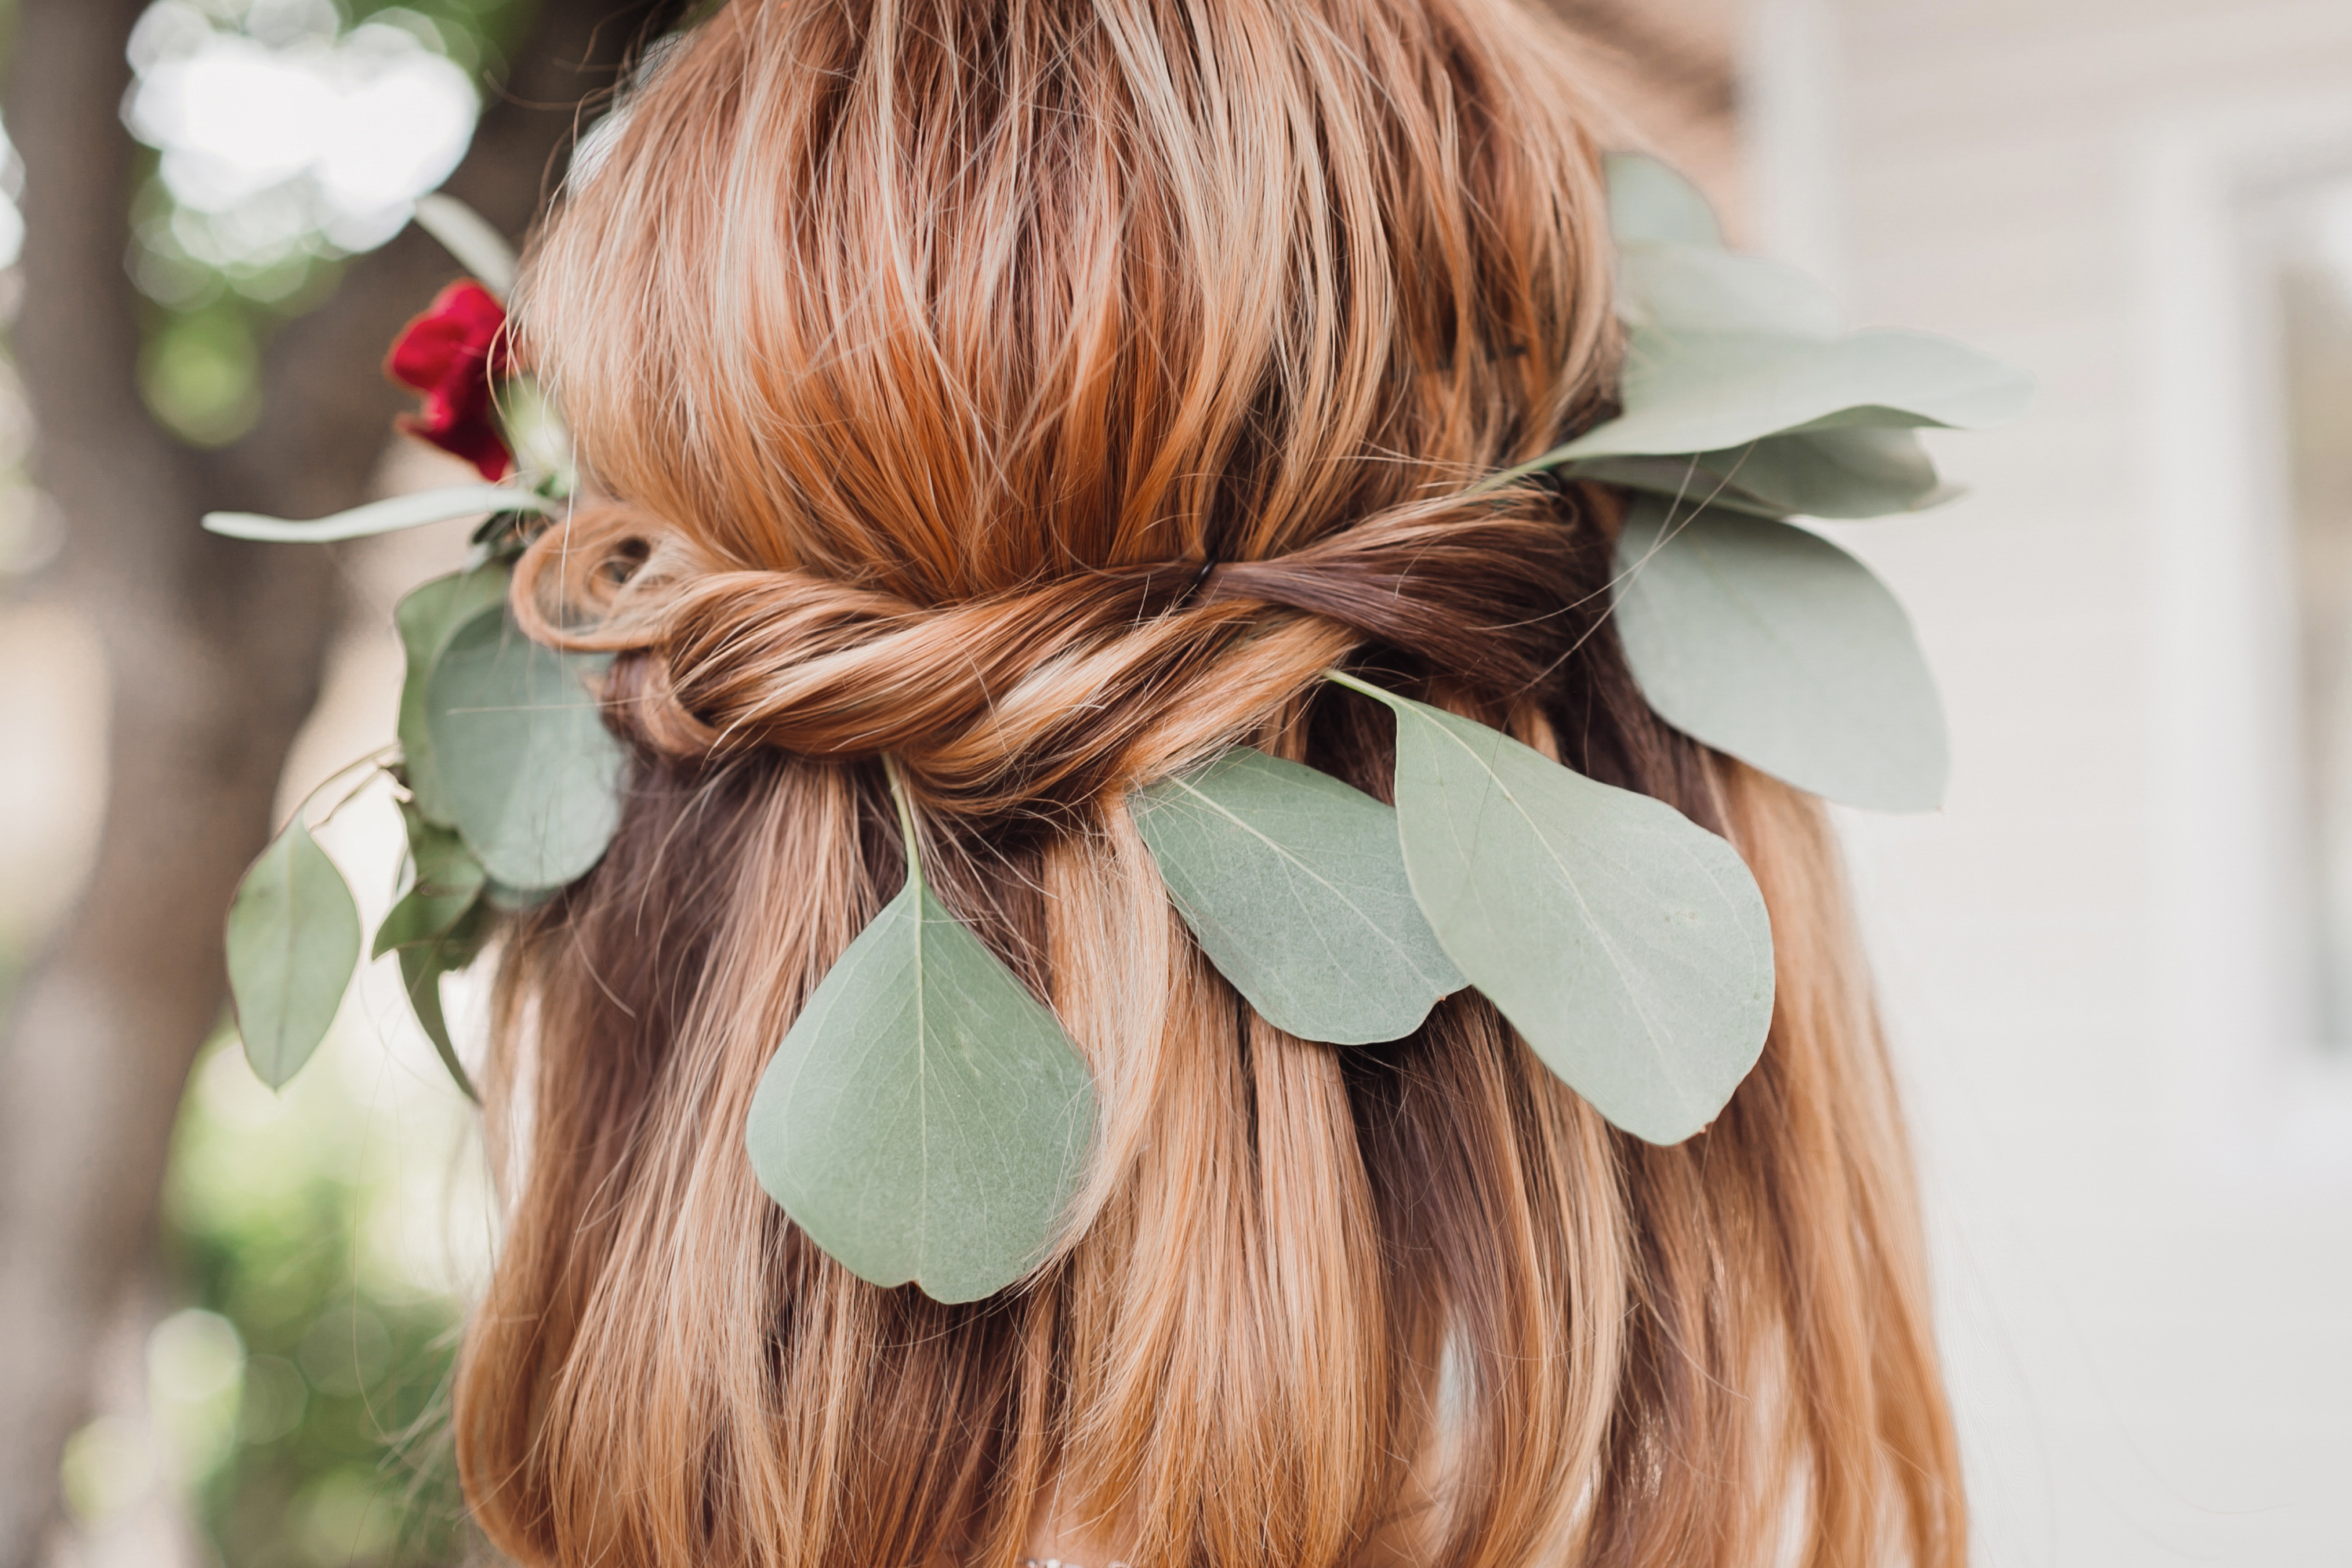 Weather you have long hair or short hair, a classic wedding hairstyle is twists with accessories. It will wow all of your guests and your new spouse.